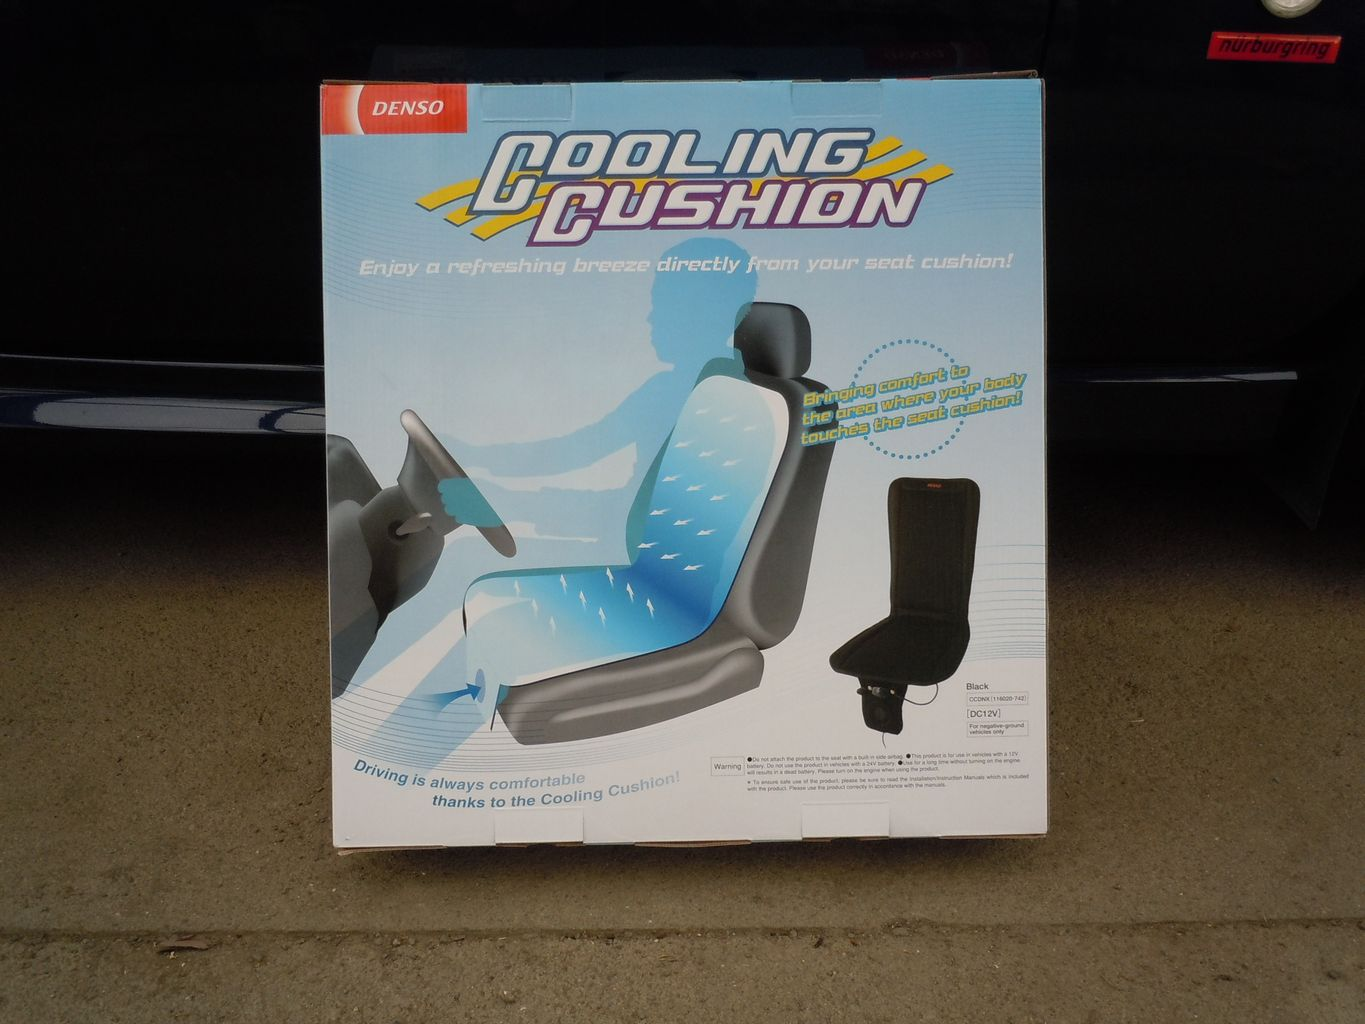 DENSO COOLING CUSHION [DENSO-0002]